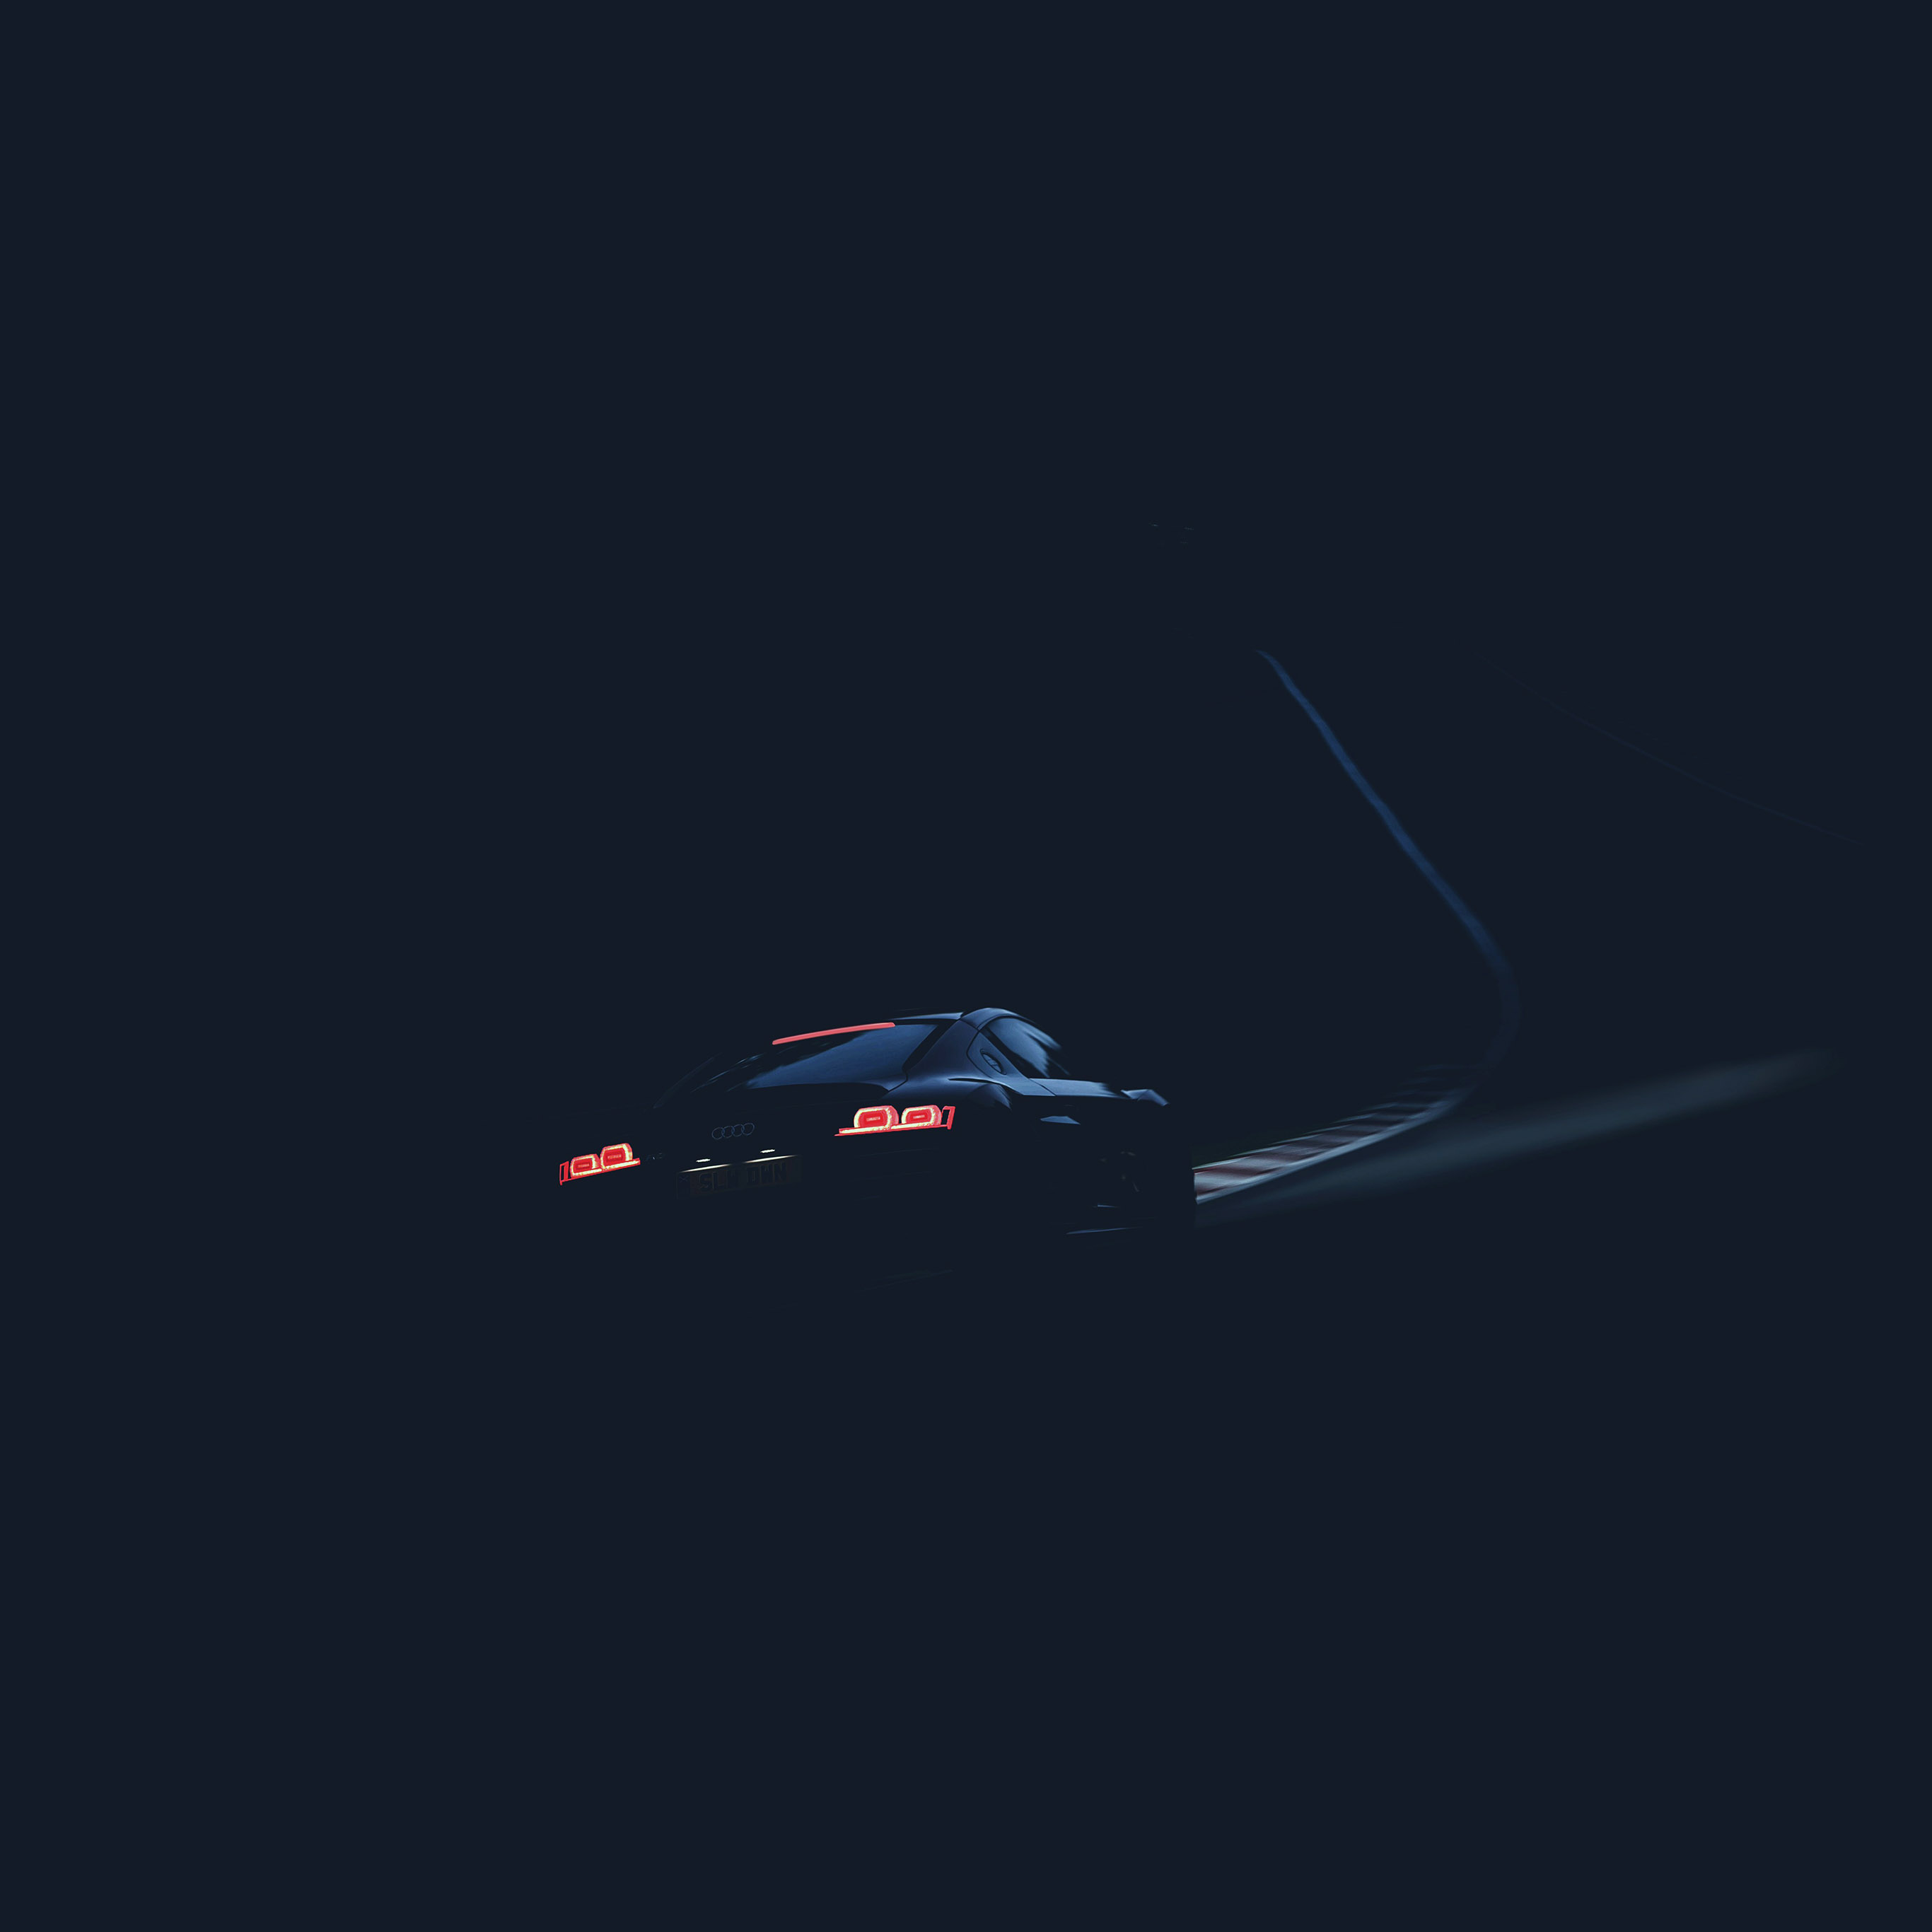 Androidpapers Co Android Wallpaper Ar21 Audi Car Drive Blue Dark